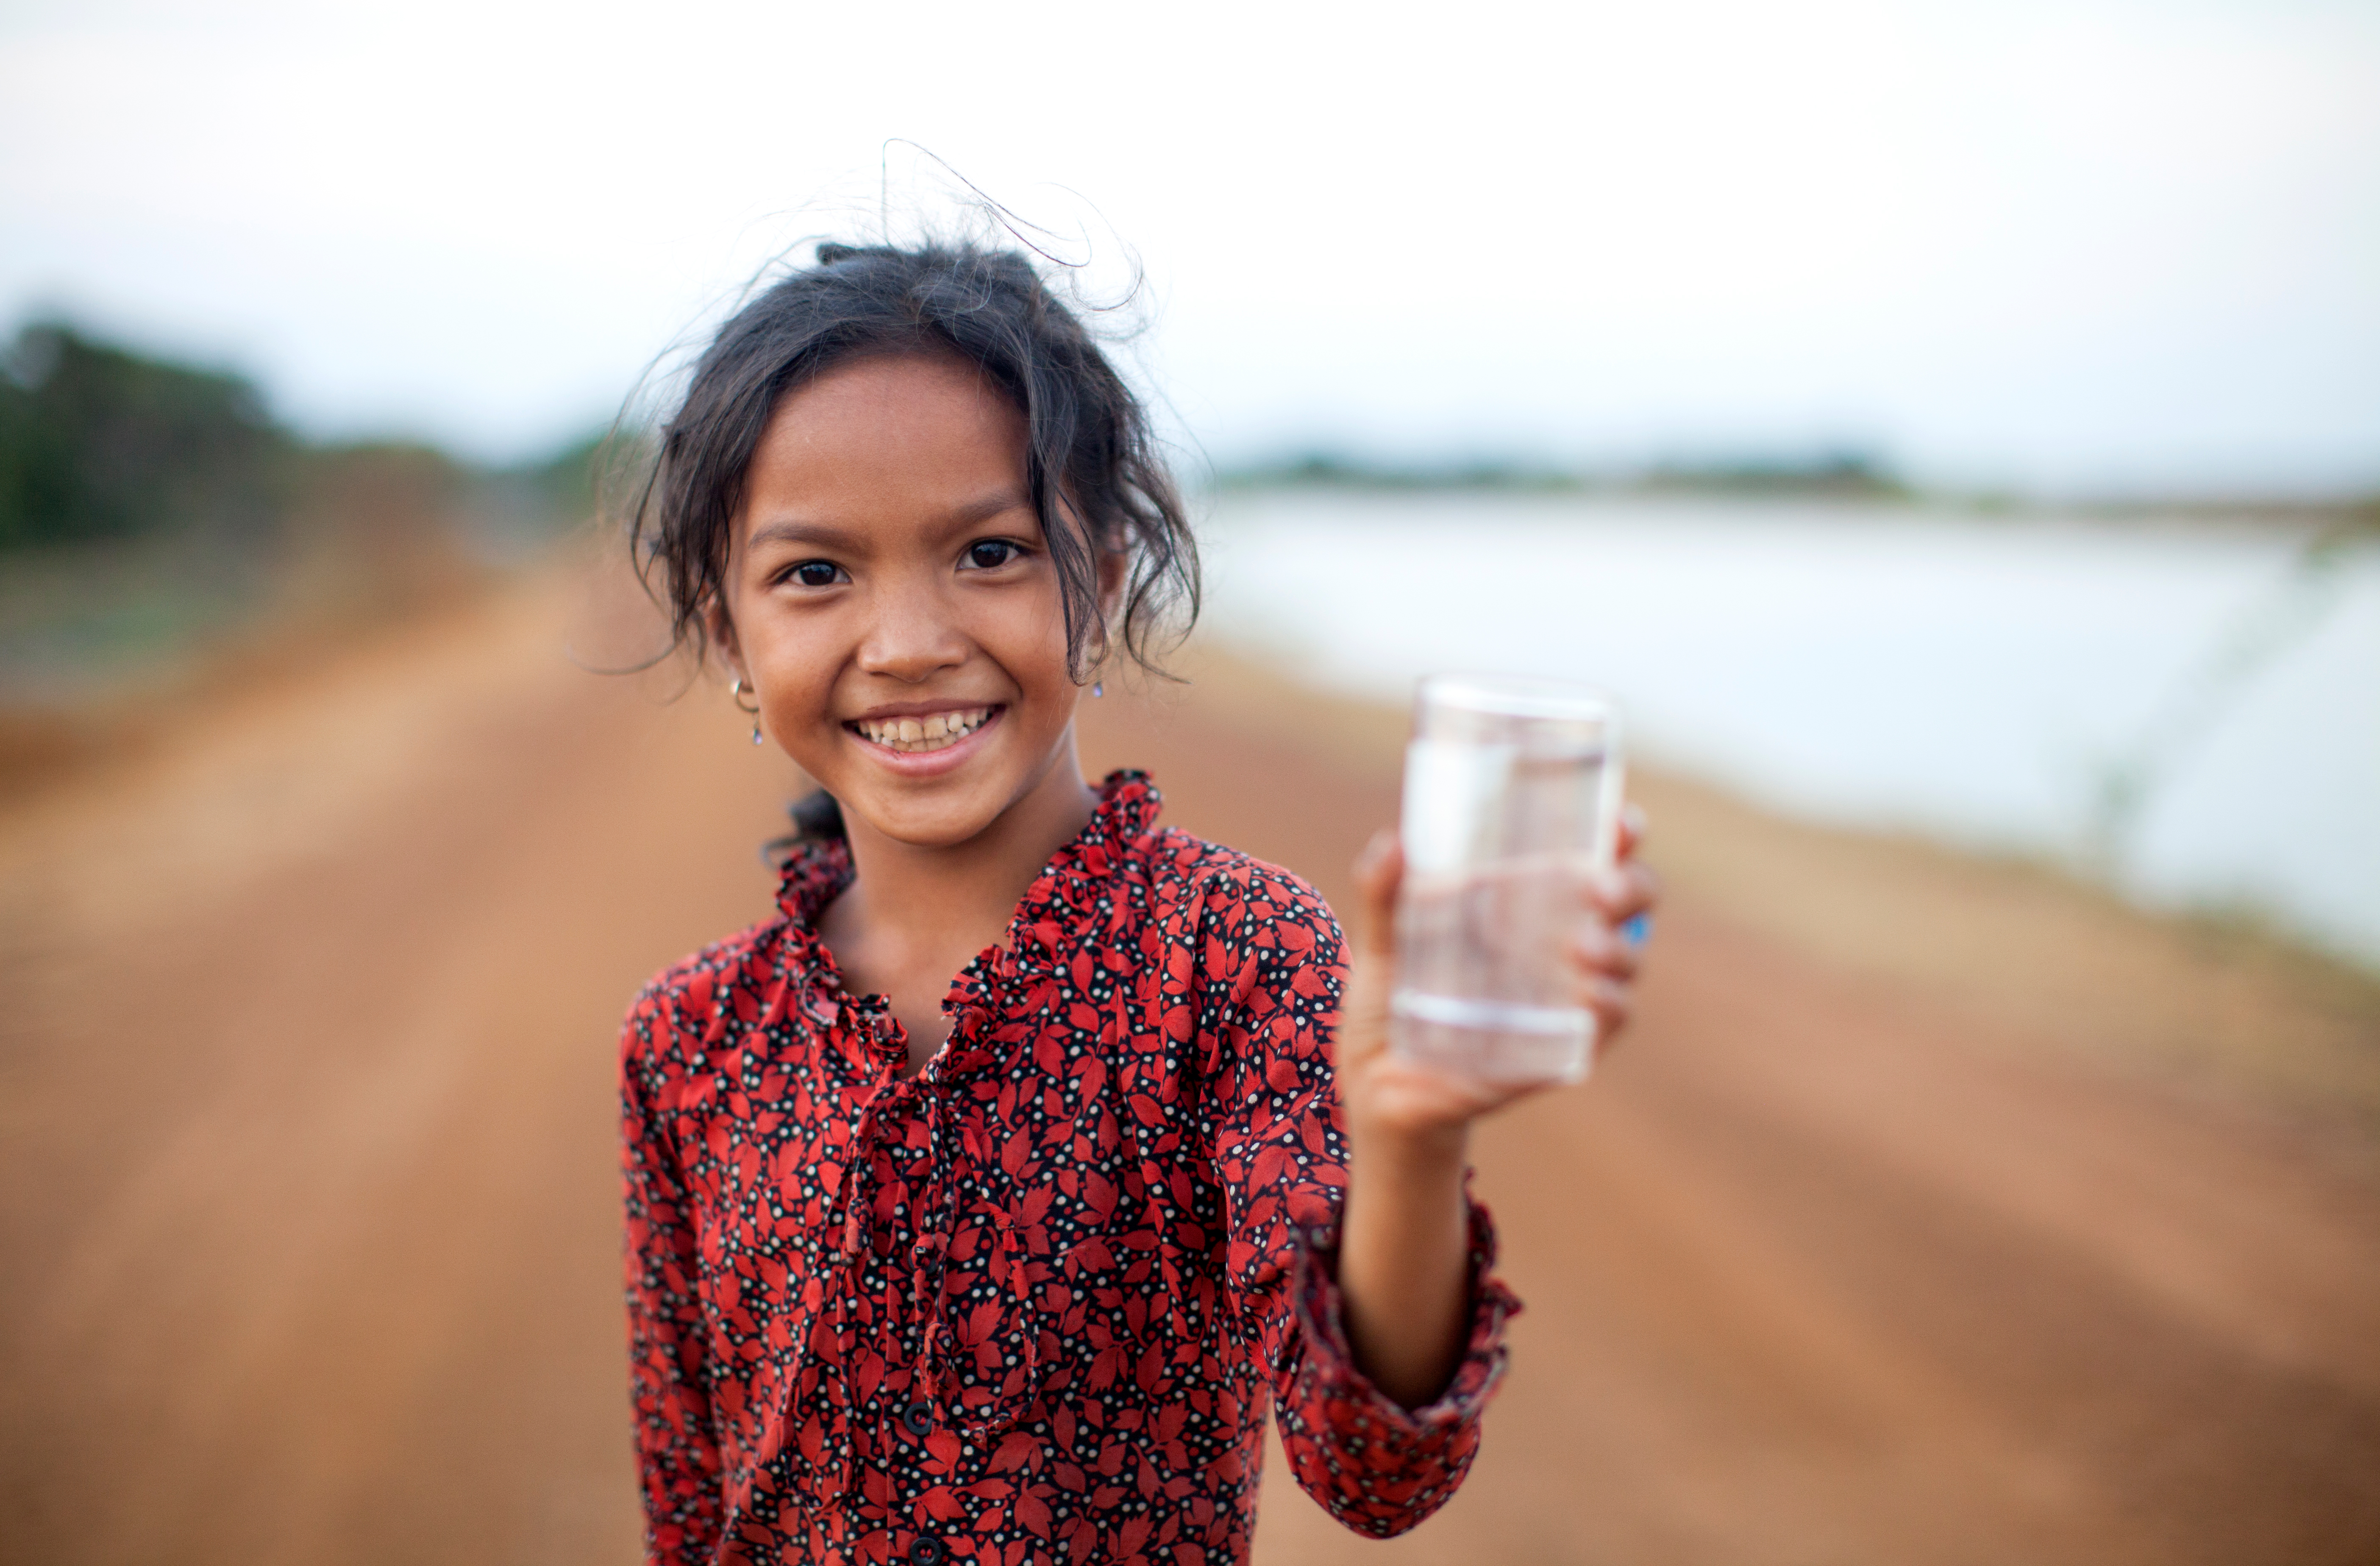 Smiling girl holds glass of water